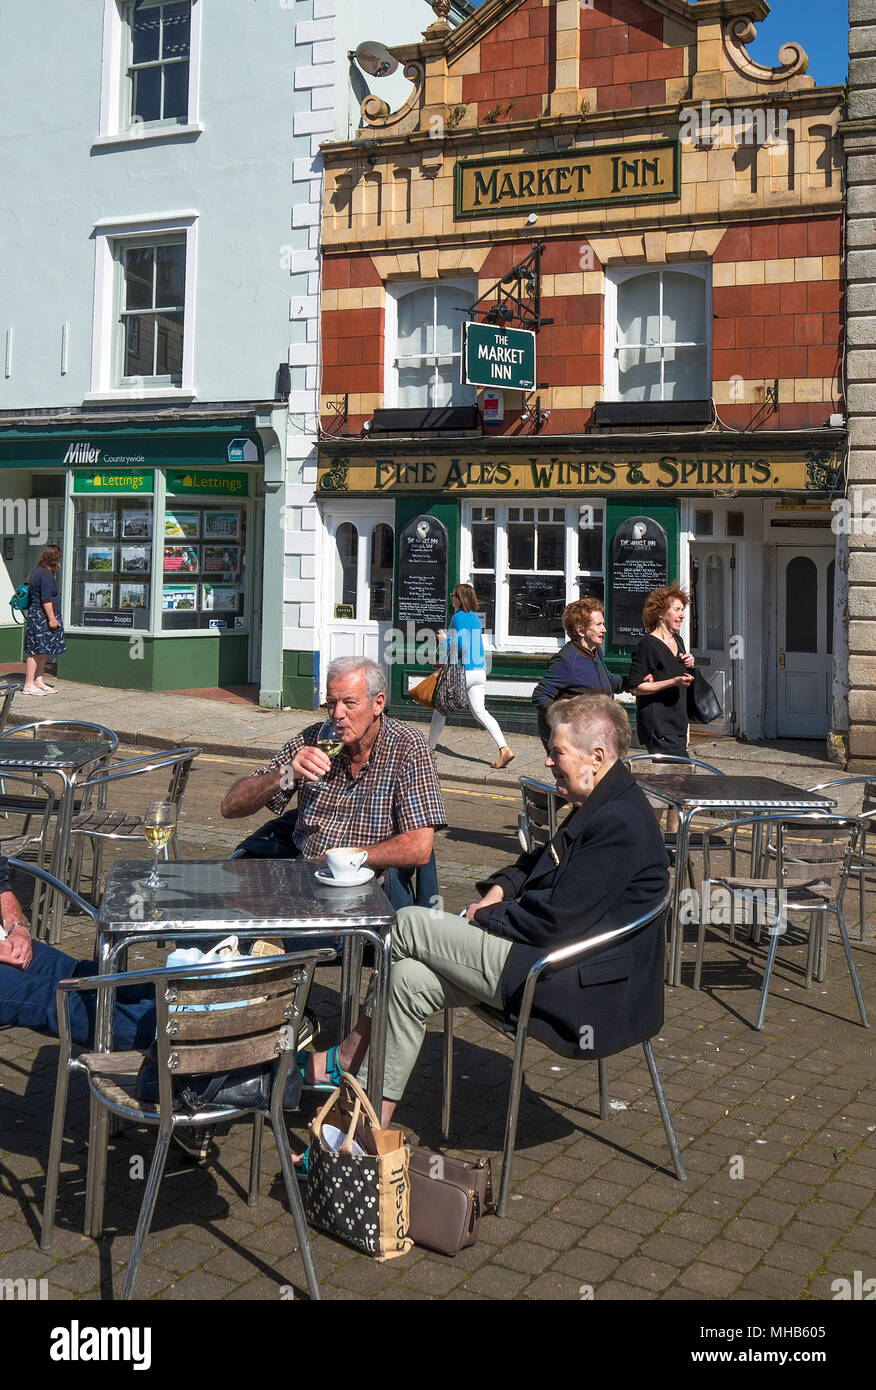 visitors tourists cafe bar pub outside seating alfresco dining truro, cornwall, england, britain, uk. - Stock Image